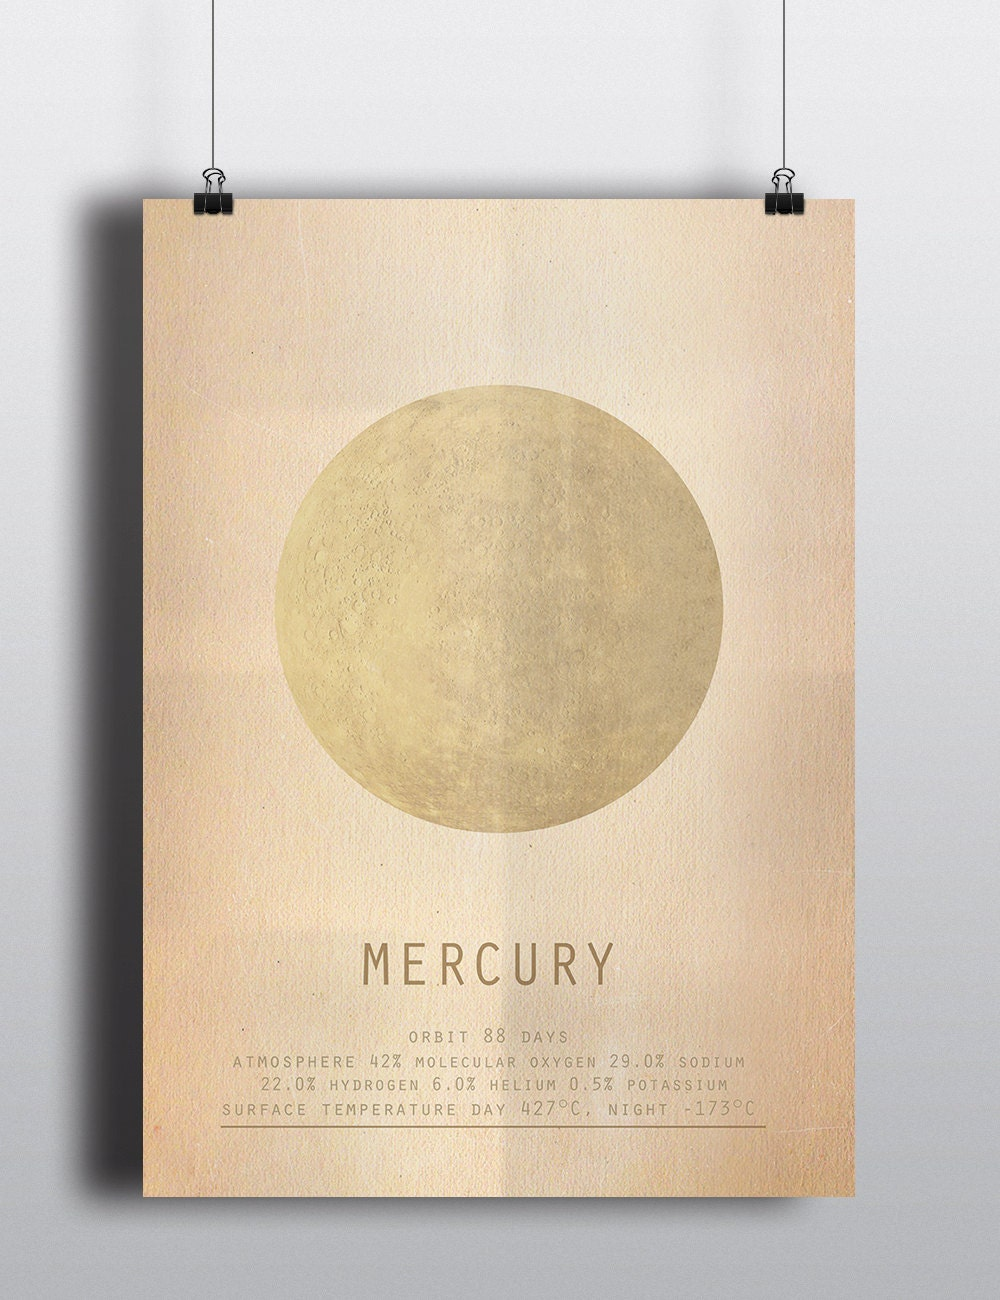 Mercury Science Poster Minimalist Planet print Home Decor